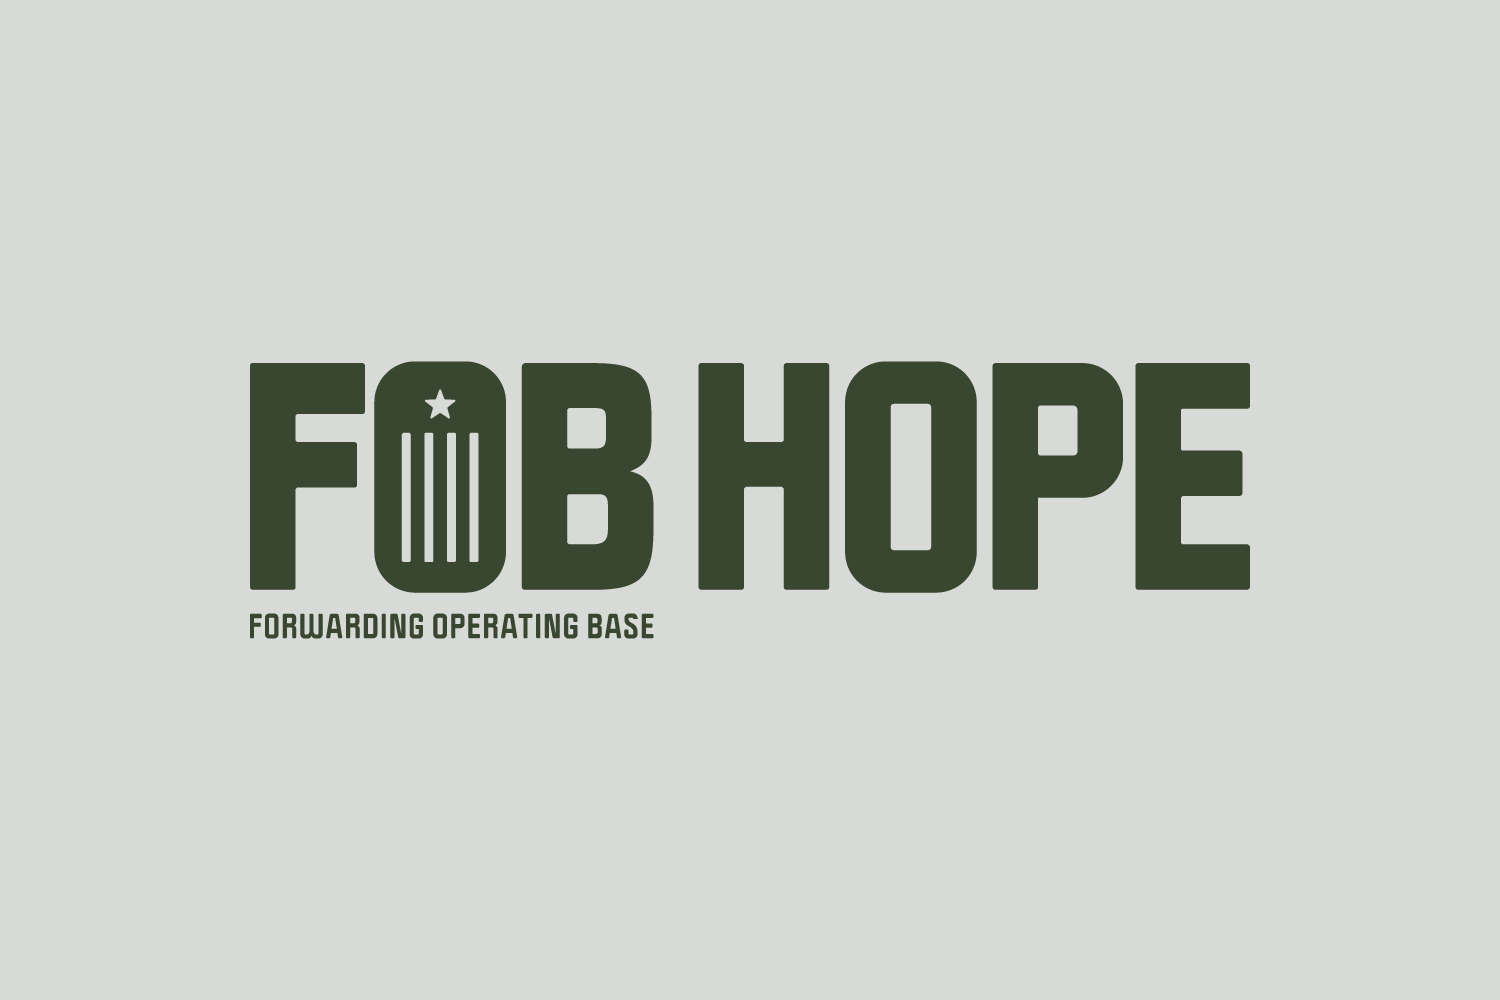 FOB_Hope_Case_Study-01.png